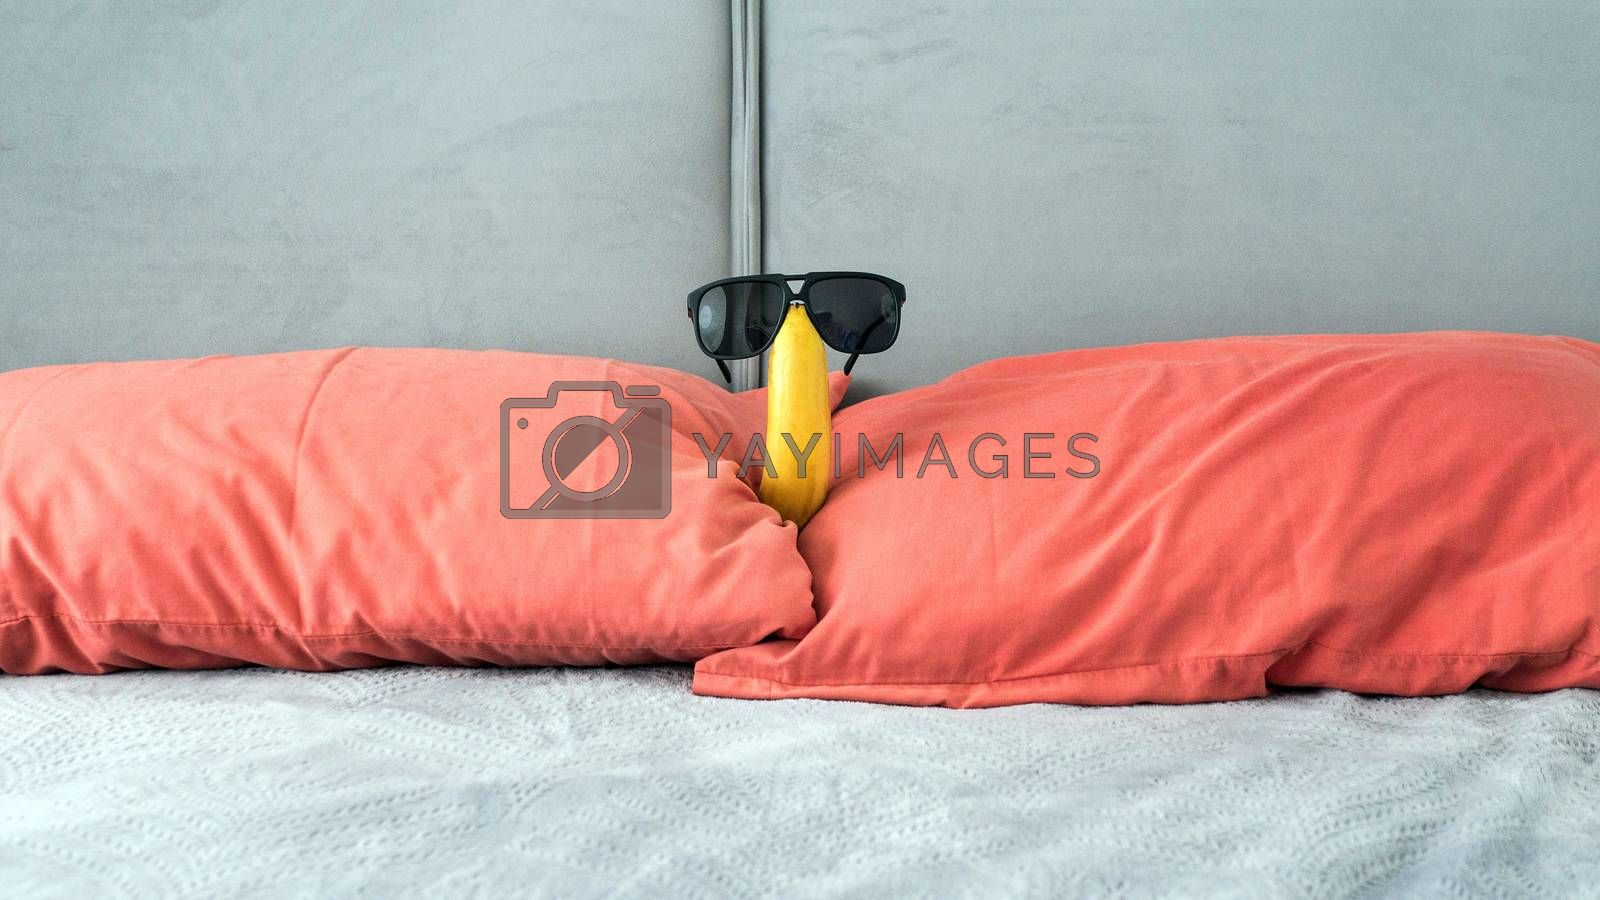 Royalty free image of Banana with glasses in the apartment on the bed in the bedroom, red pillows,funny banana with glasses. by Andriii_Klapkoo